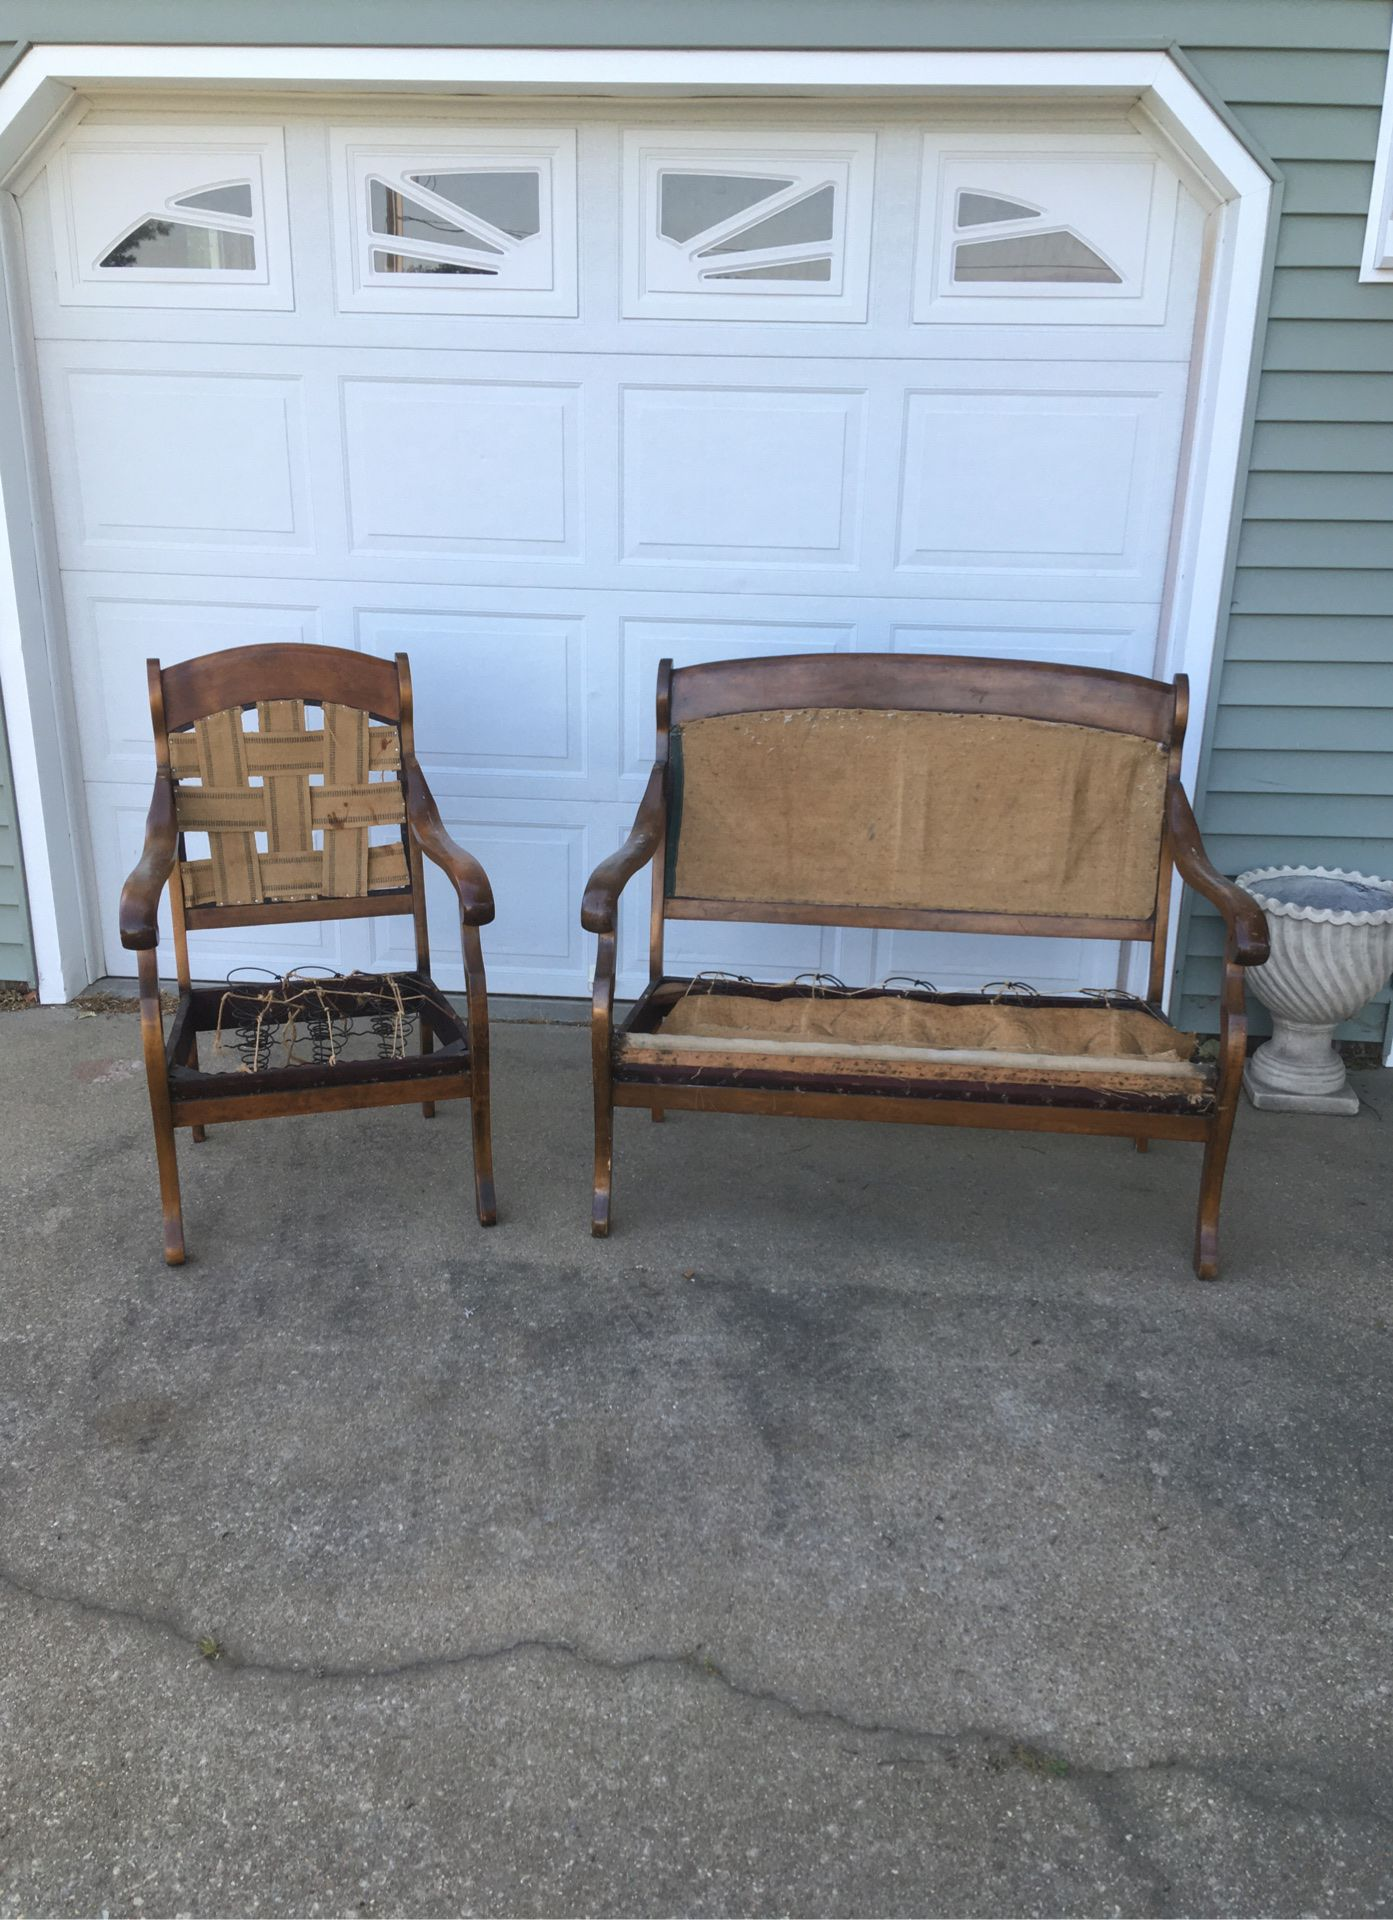 Vintage bench and chair